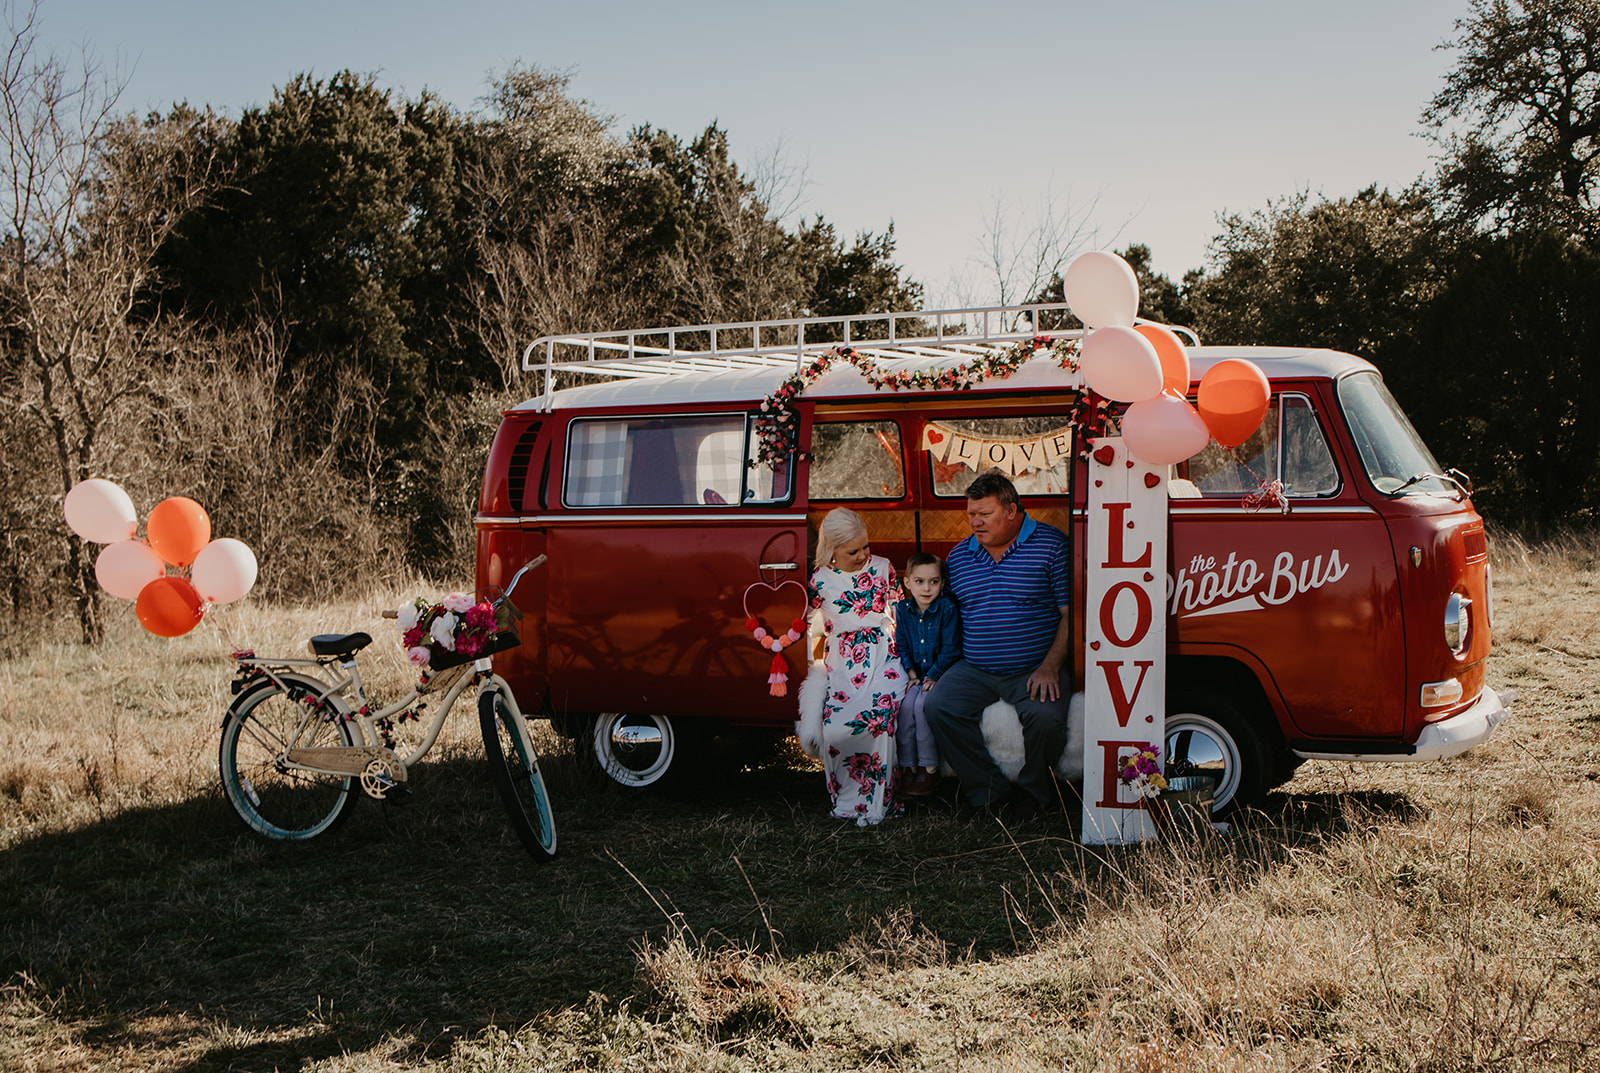 vw bus rental photo shoot-2.JPG